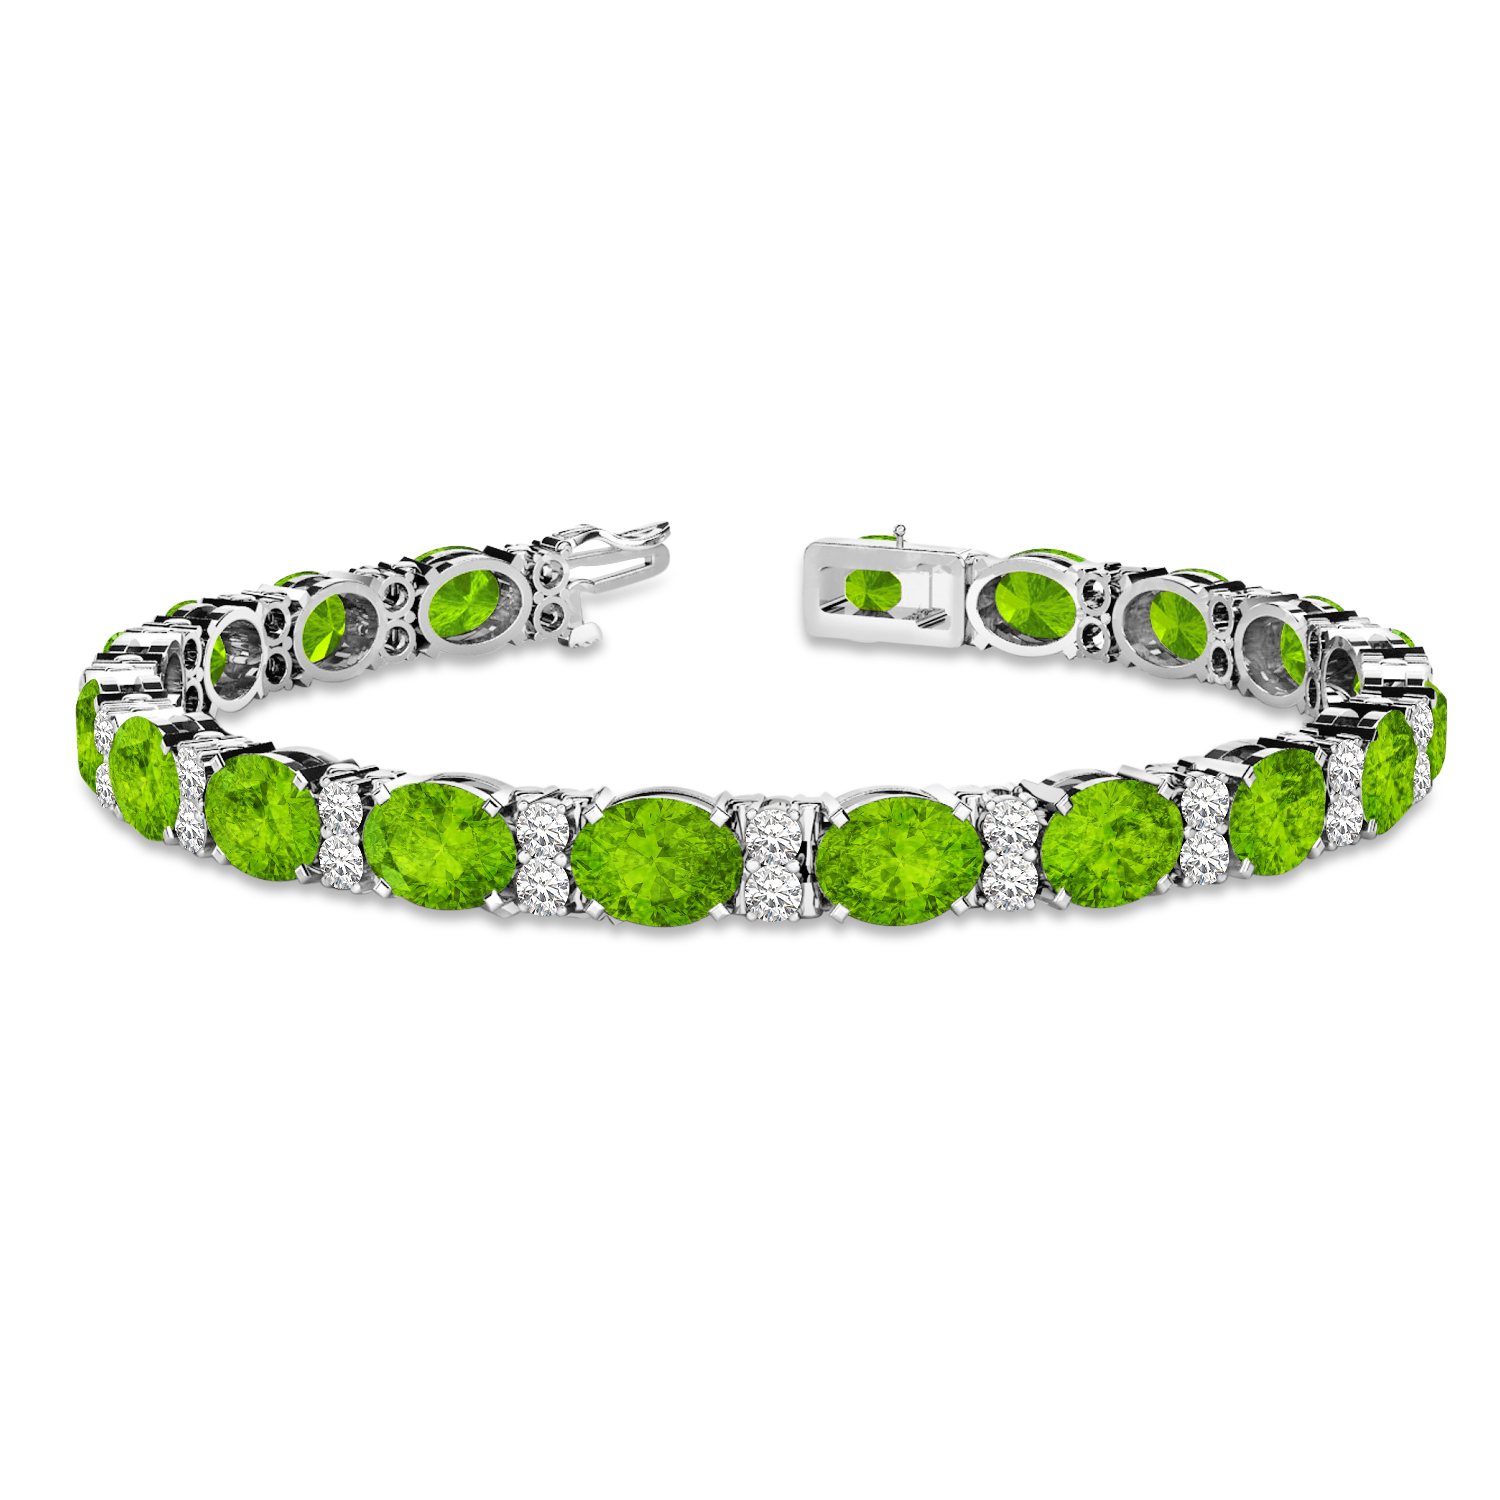 Diamond & Oval Cut Peridot Tennis Bracelet 14k White Gold (13.62ctw)